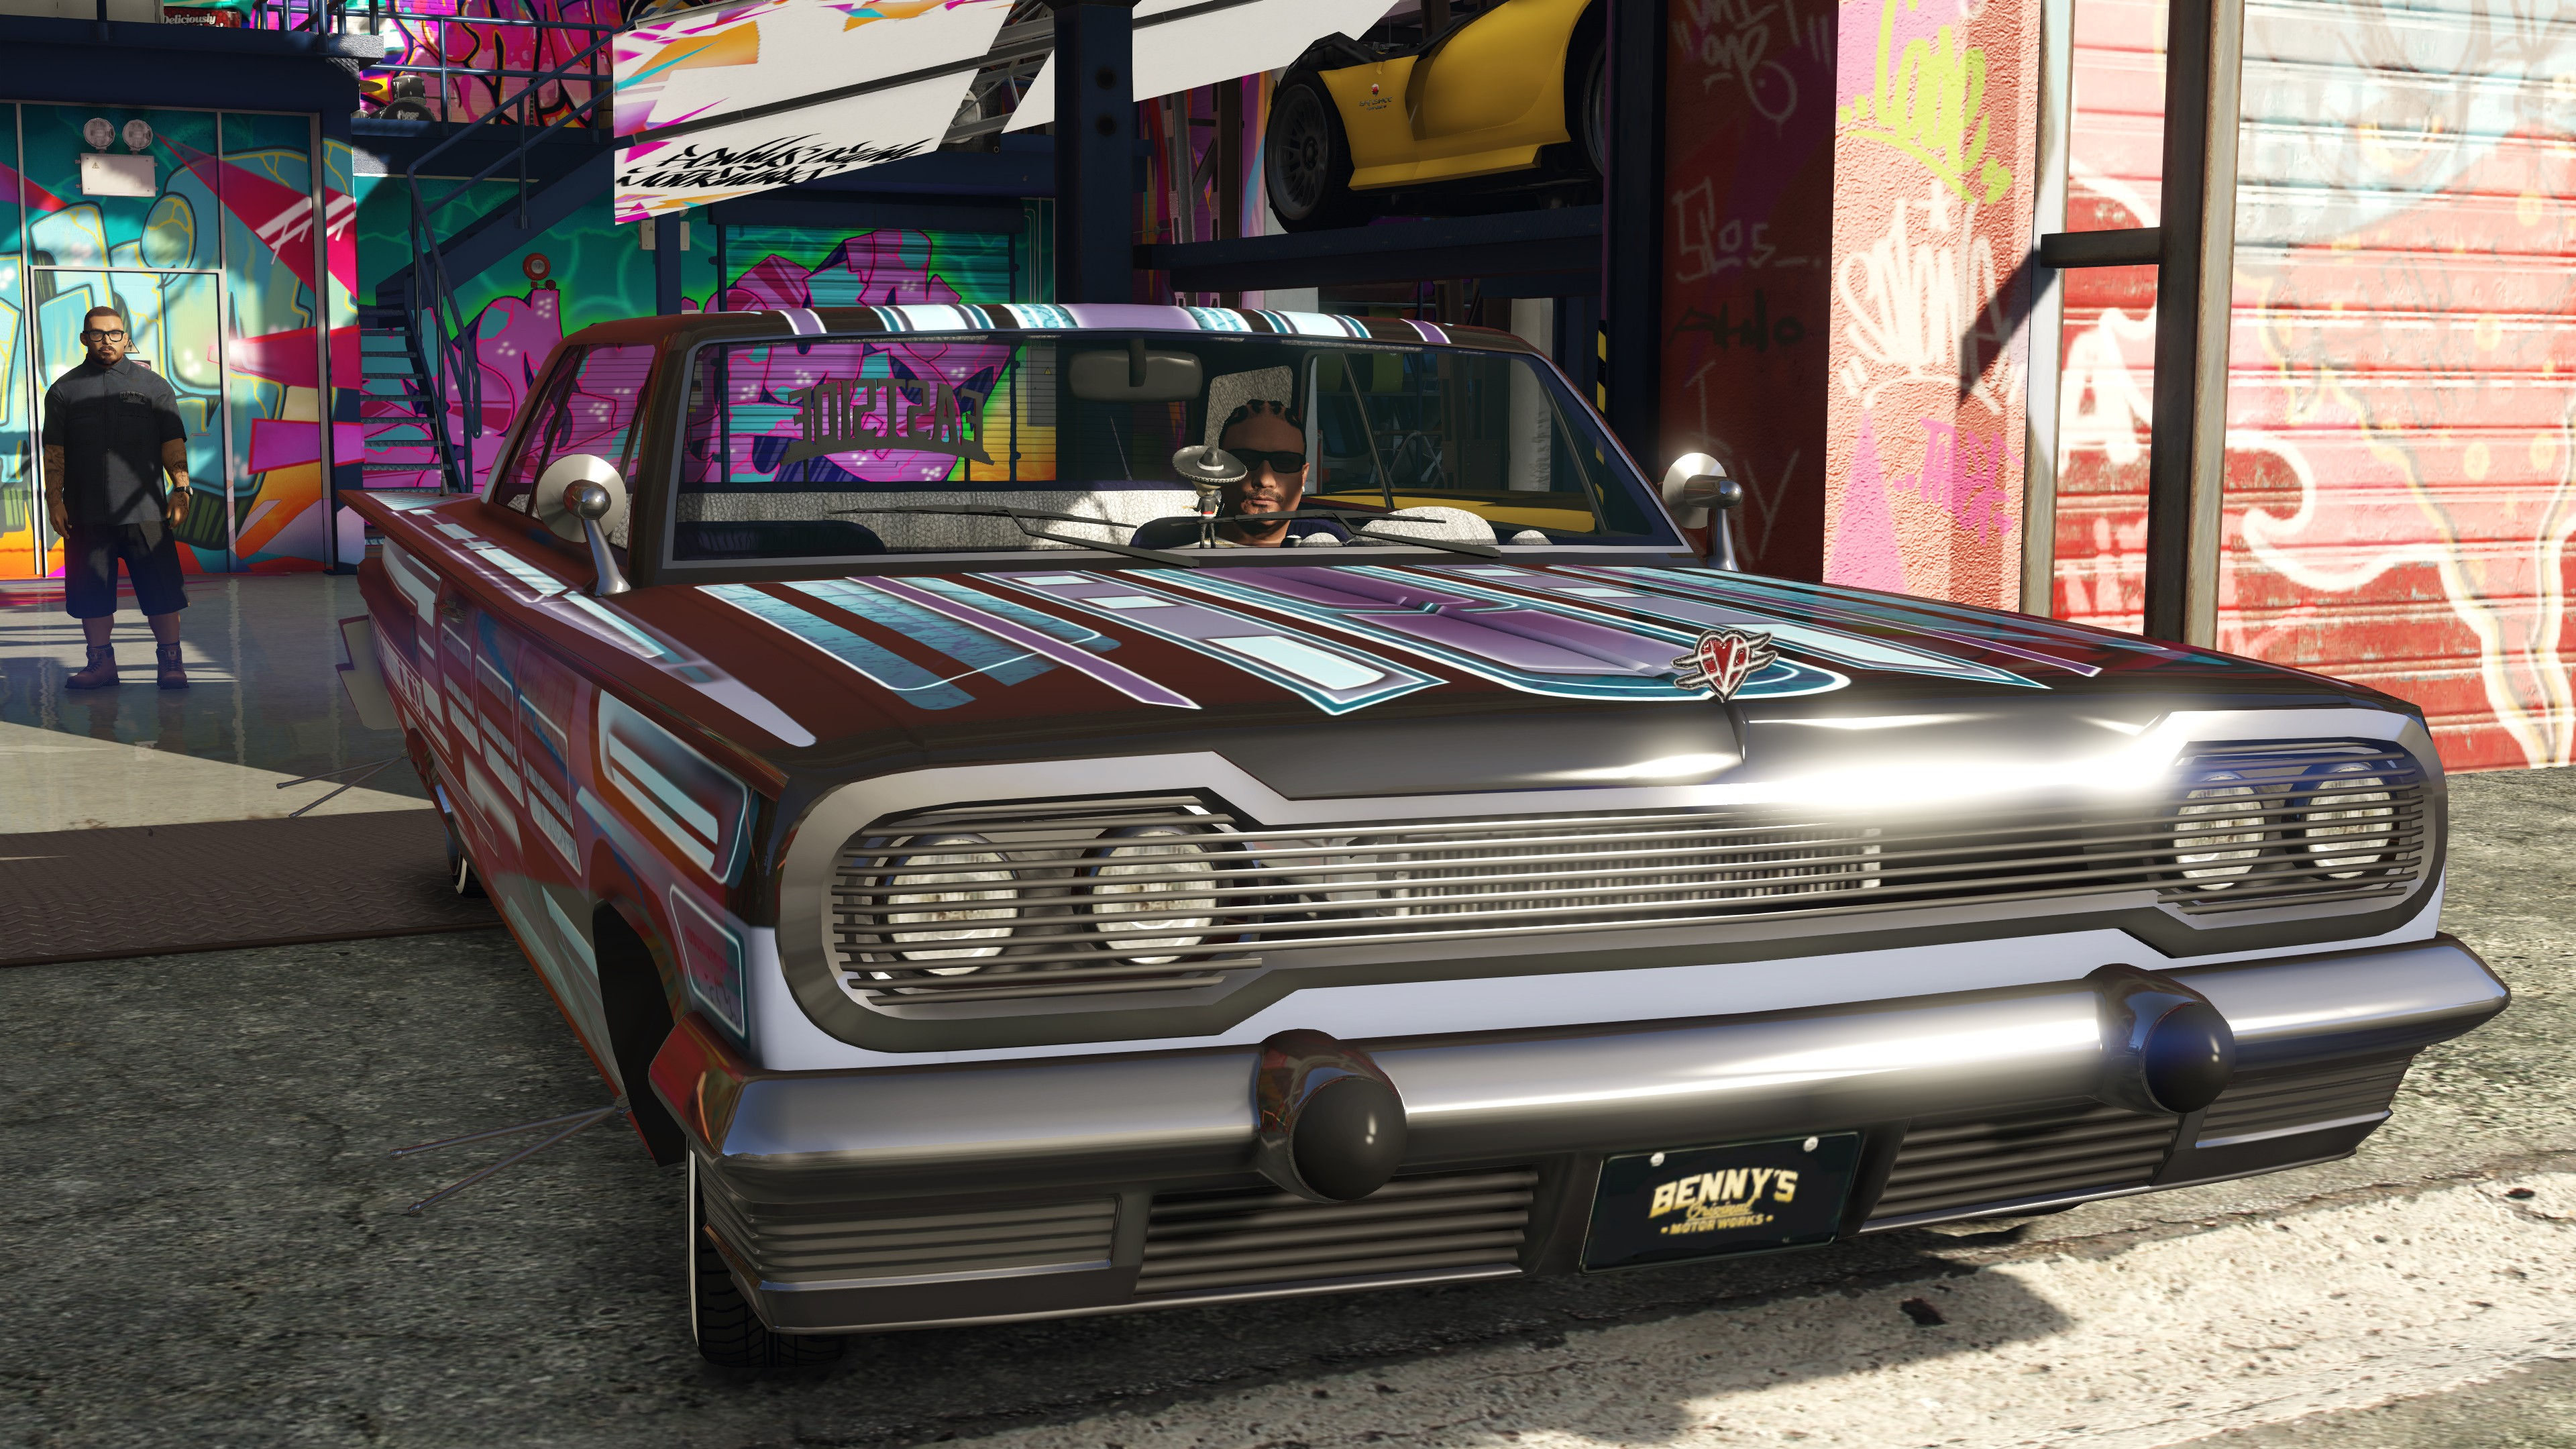 Gta Online Cars Selling For Low Price